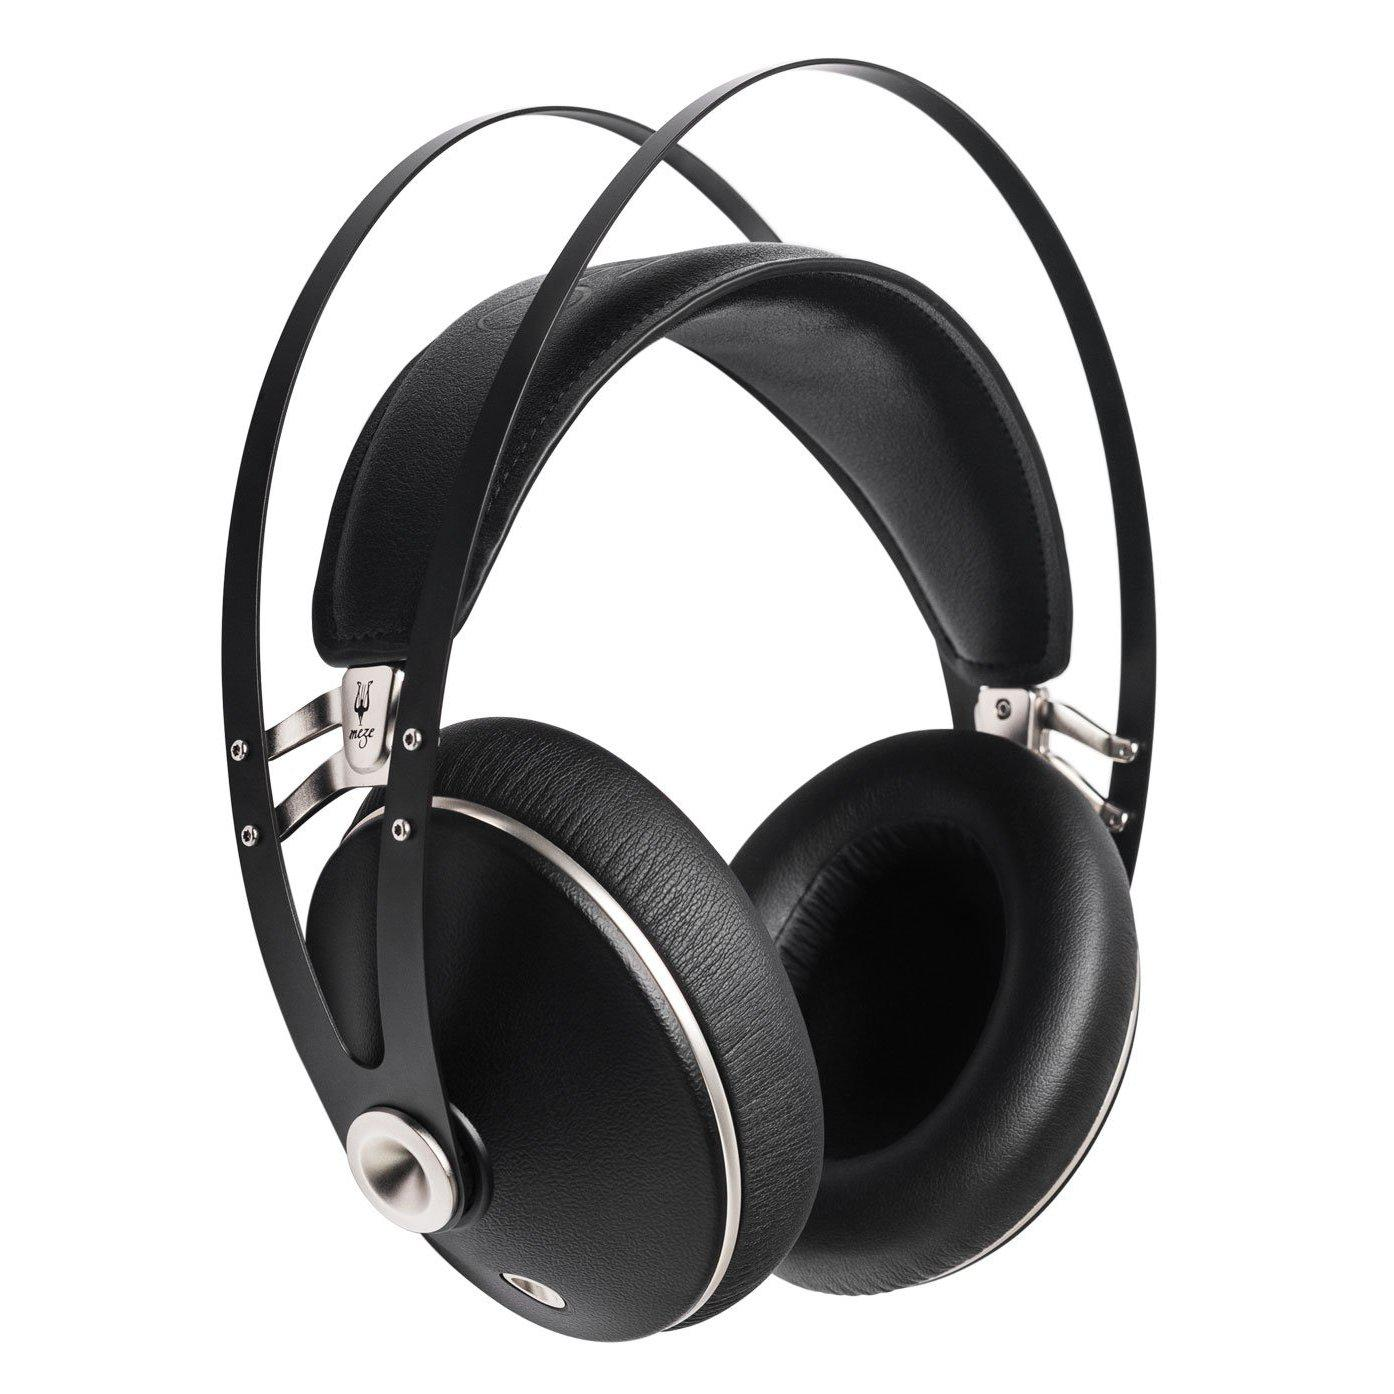 Meze 99 Neo Closed Headphones